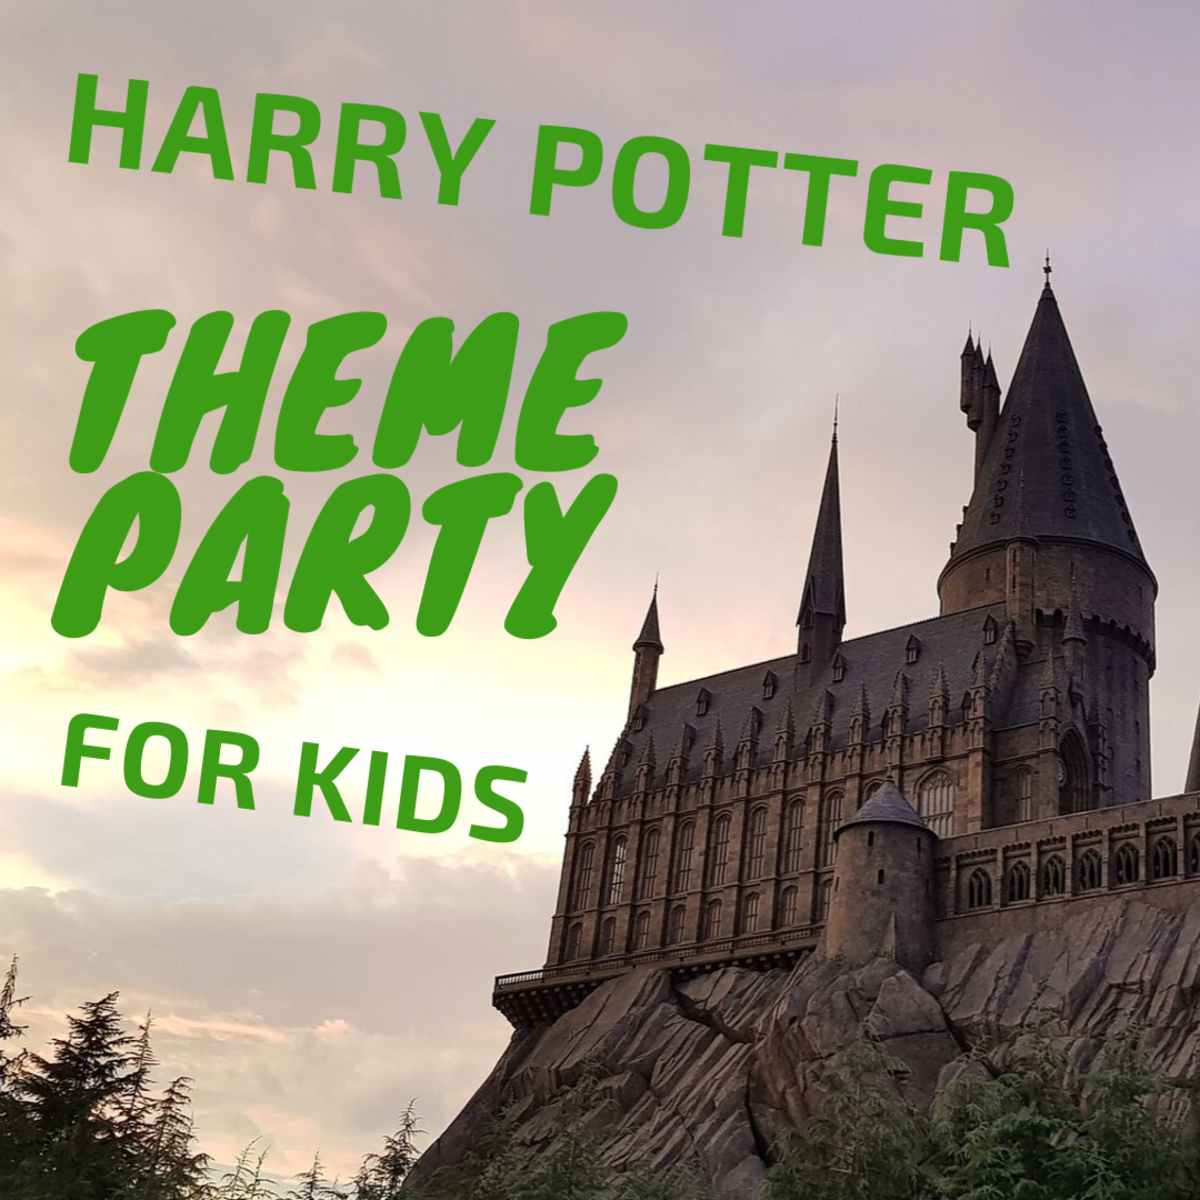 Harry Potter Theme Party for Kids